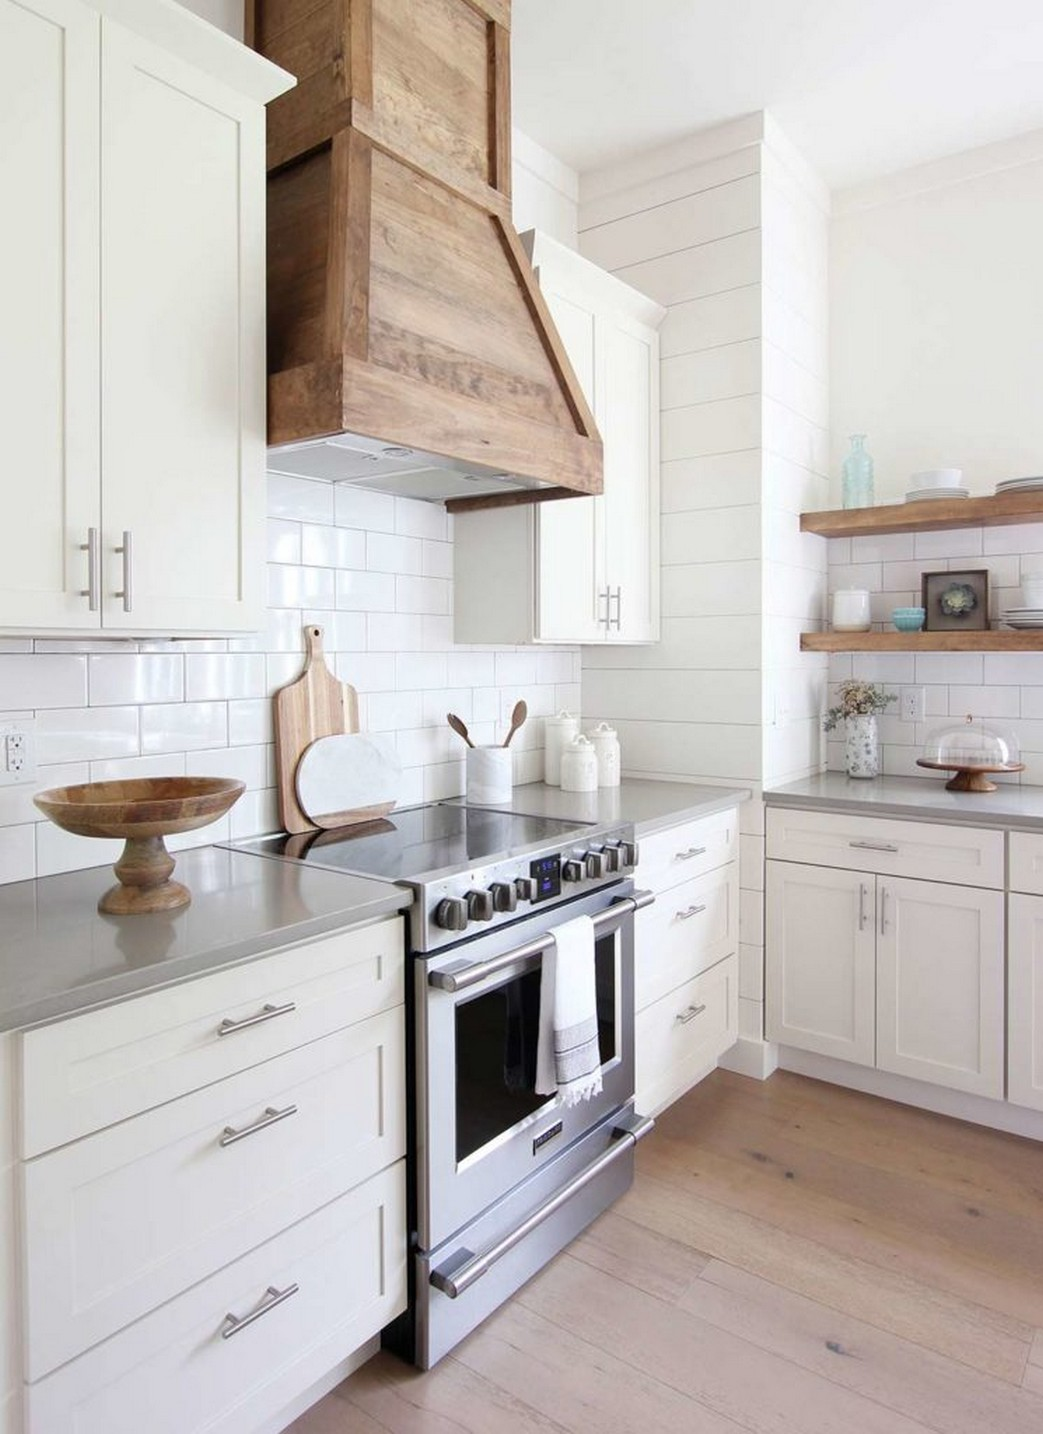 Surprising Decoration Concept of Kitchen - Must See!!